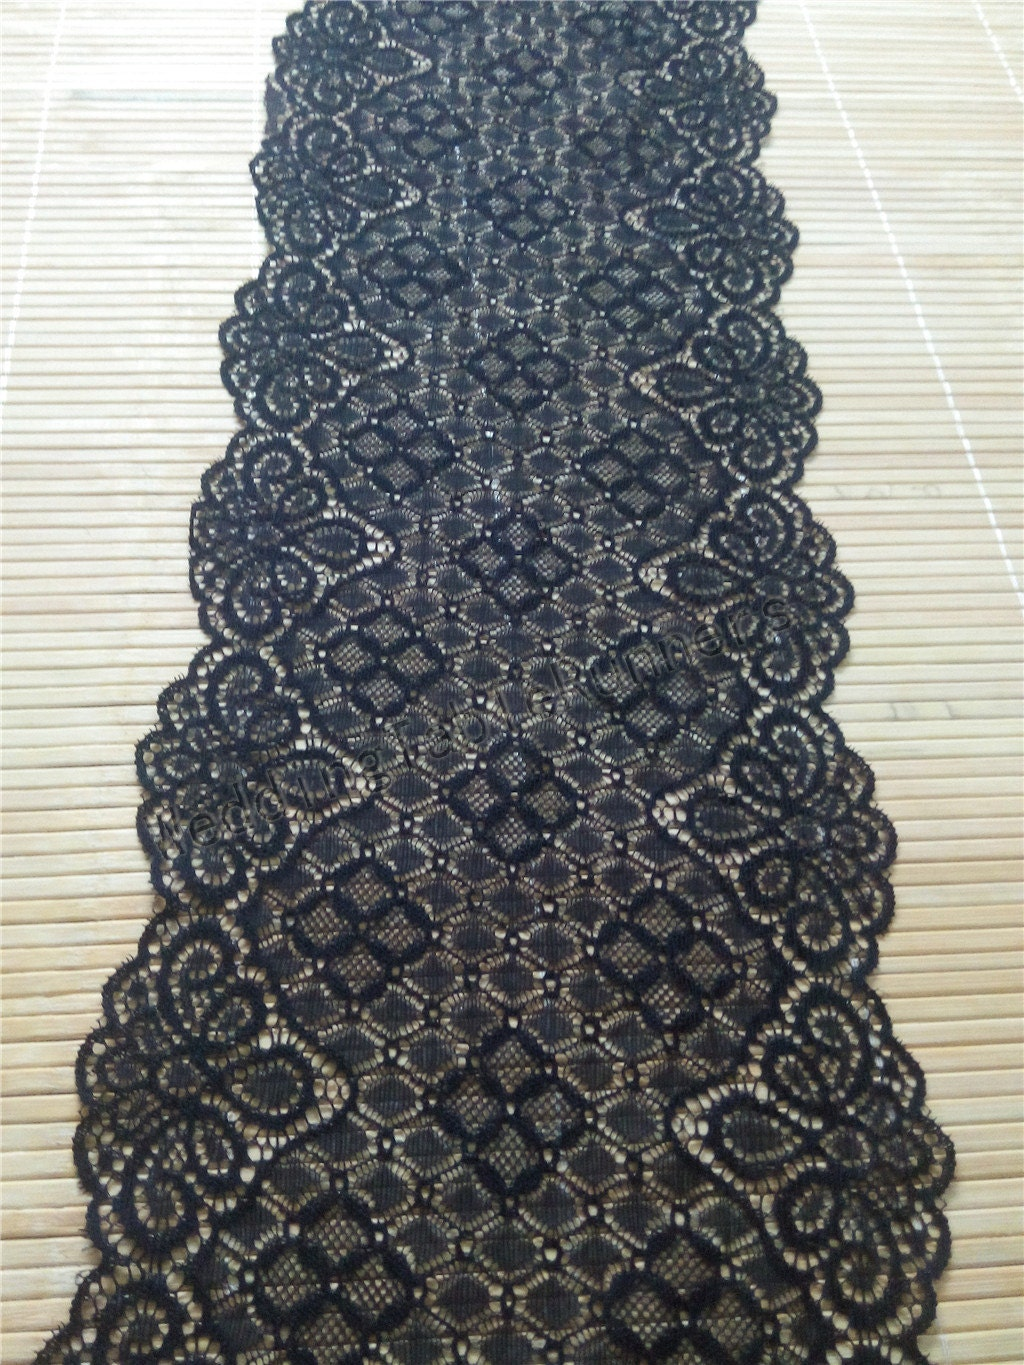 Black lace table runner 7 wedding table by weddingtablerunners